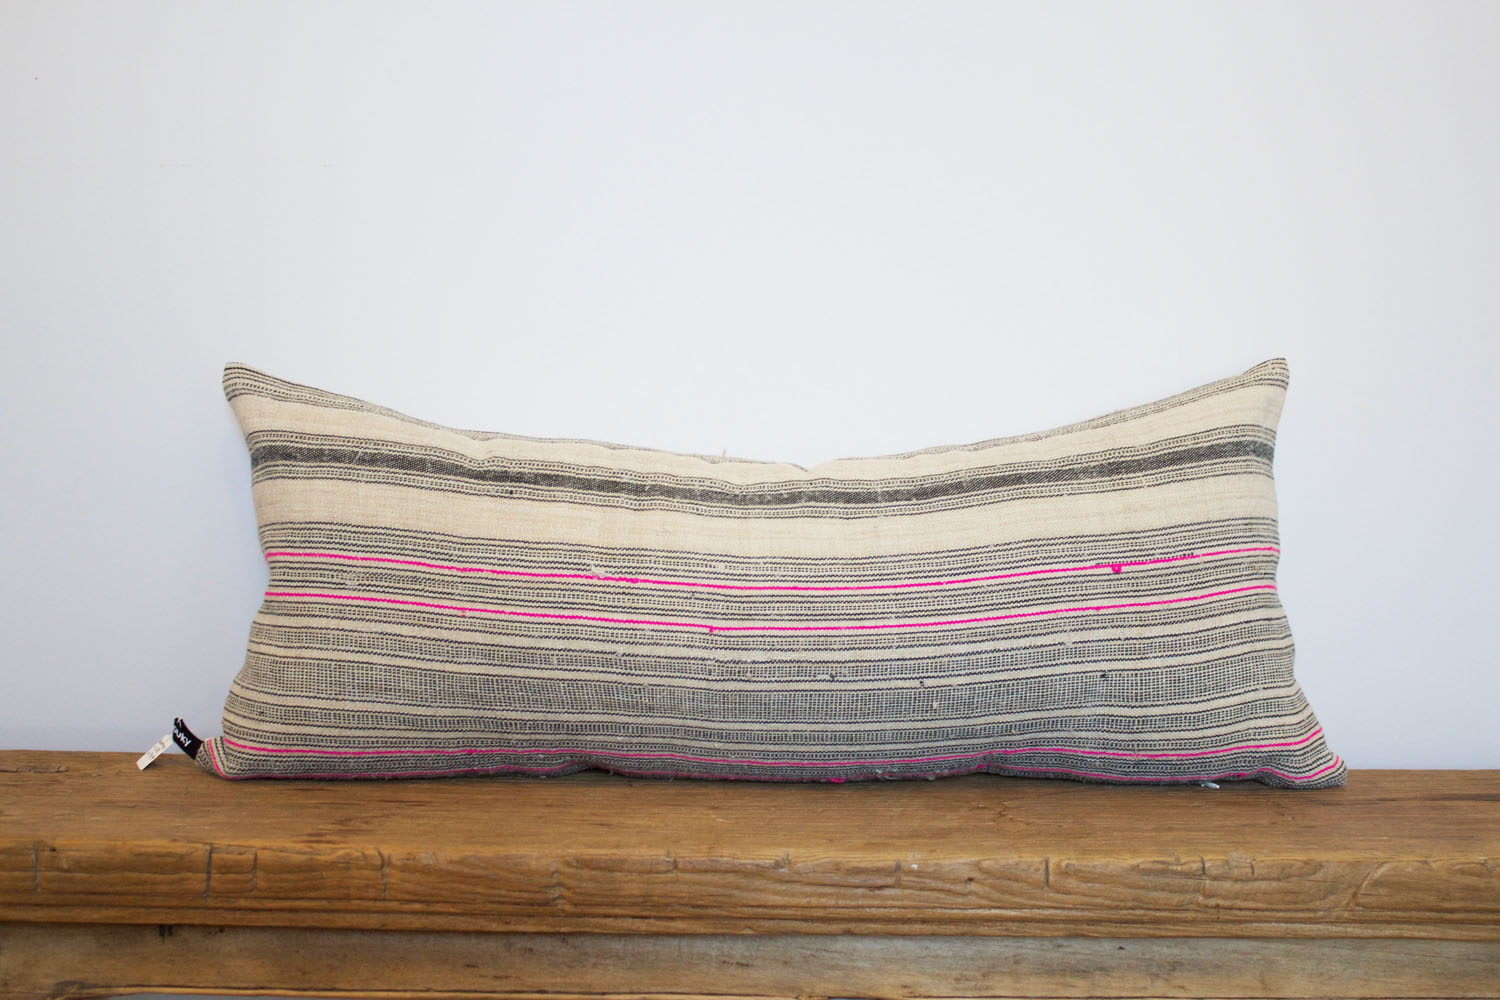 Beatrice - No. 111-114   350 RMB  Pillow cover is made from handwoven hemp fabric sourced from Northern Thailand  Size: Roughly 70x30cm  Pillow back is made from a neutral cotton/linen blend  Zipper on bottom of pillow  Down insert included  Hand wash in cold water  4 available